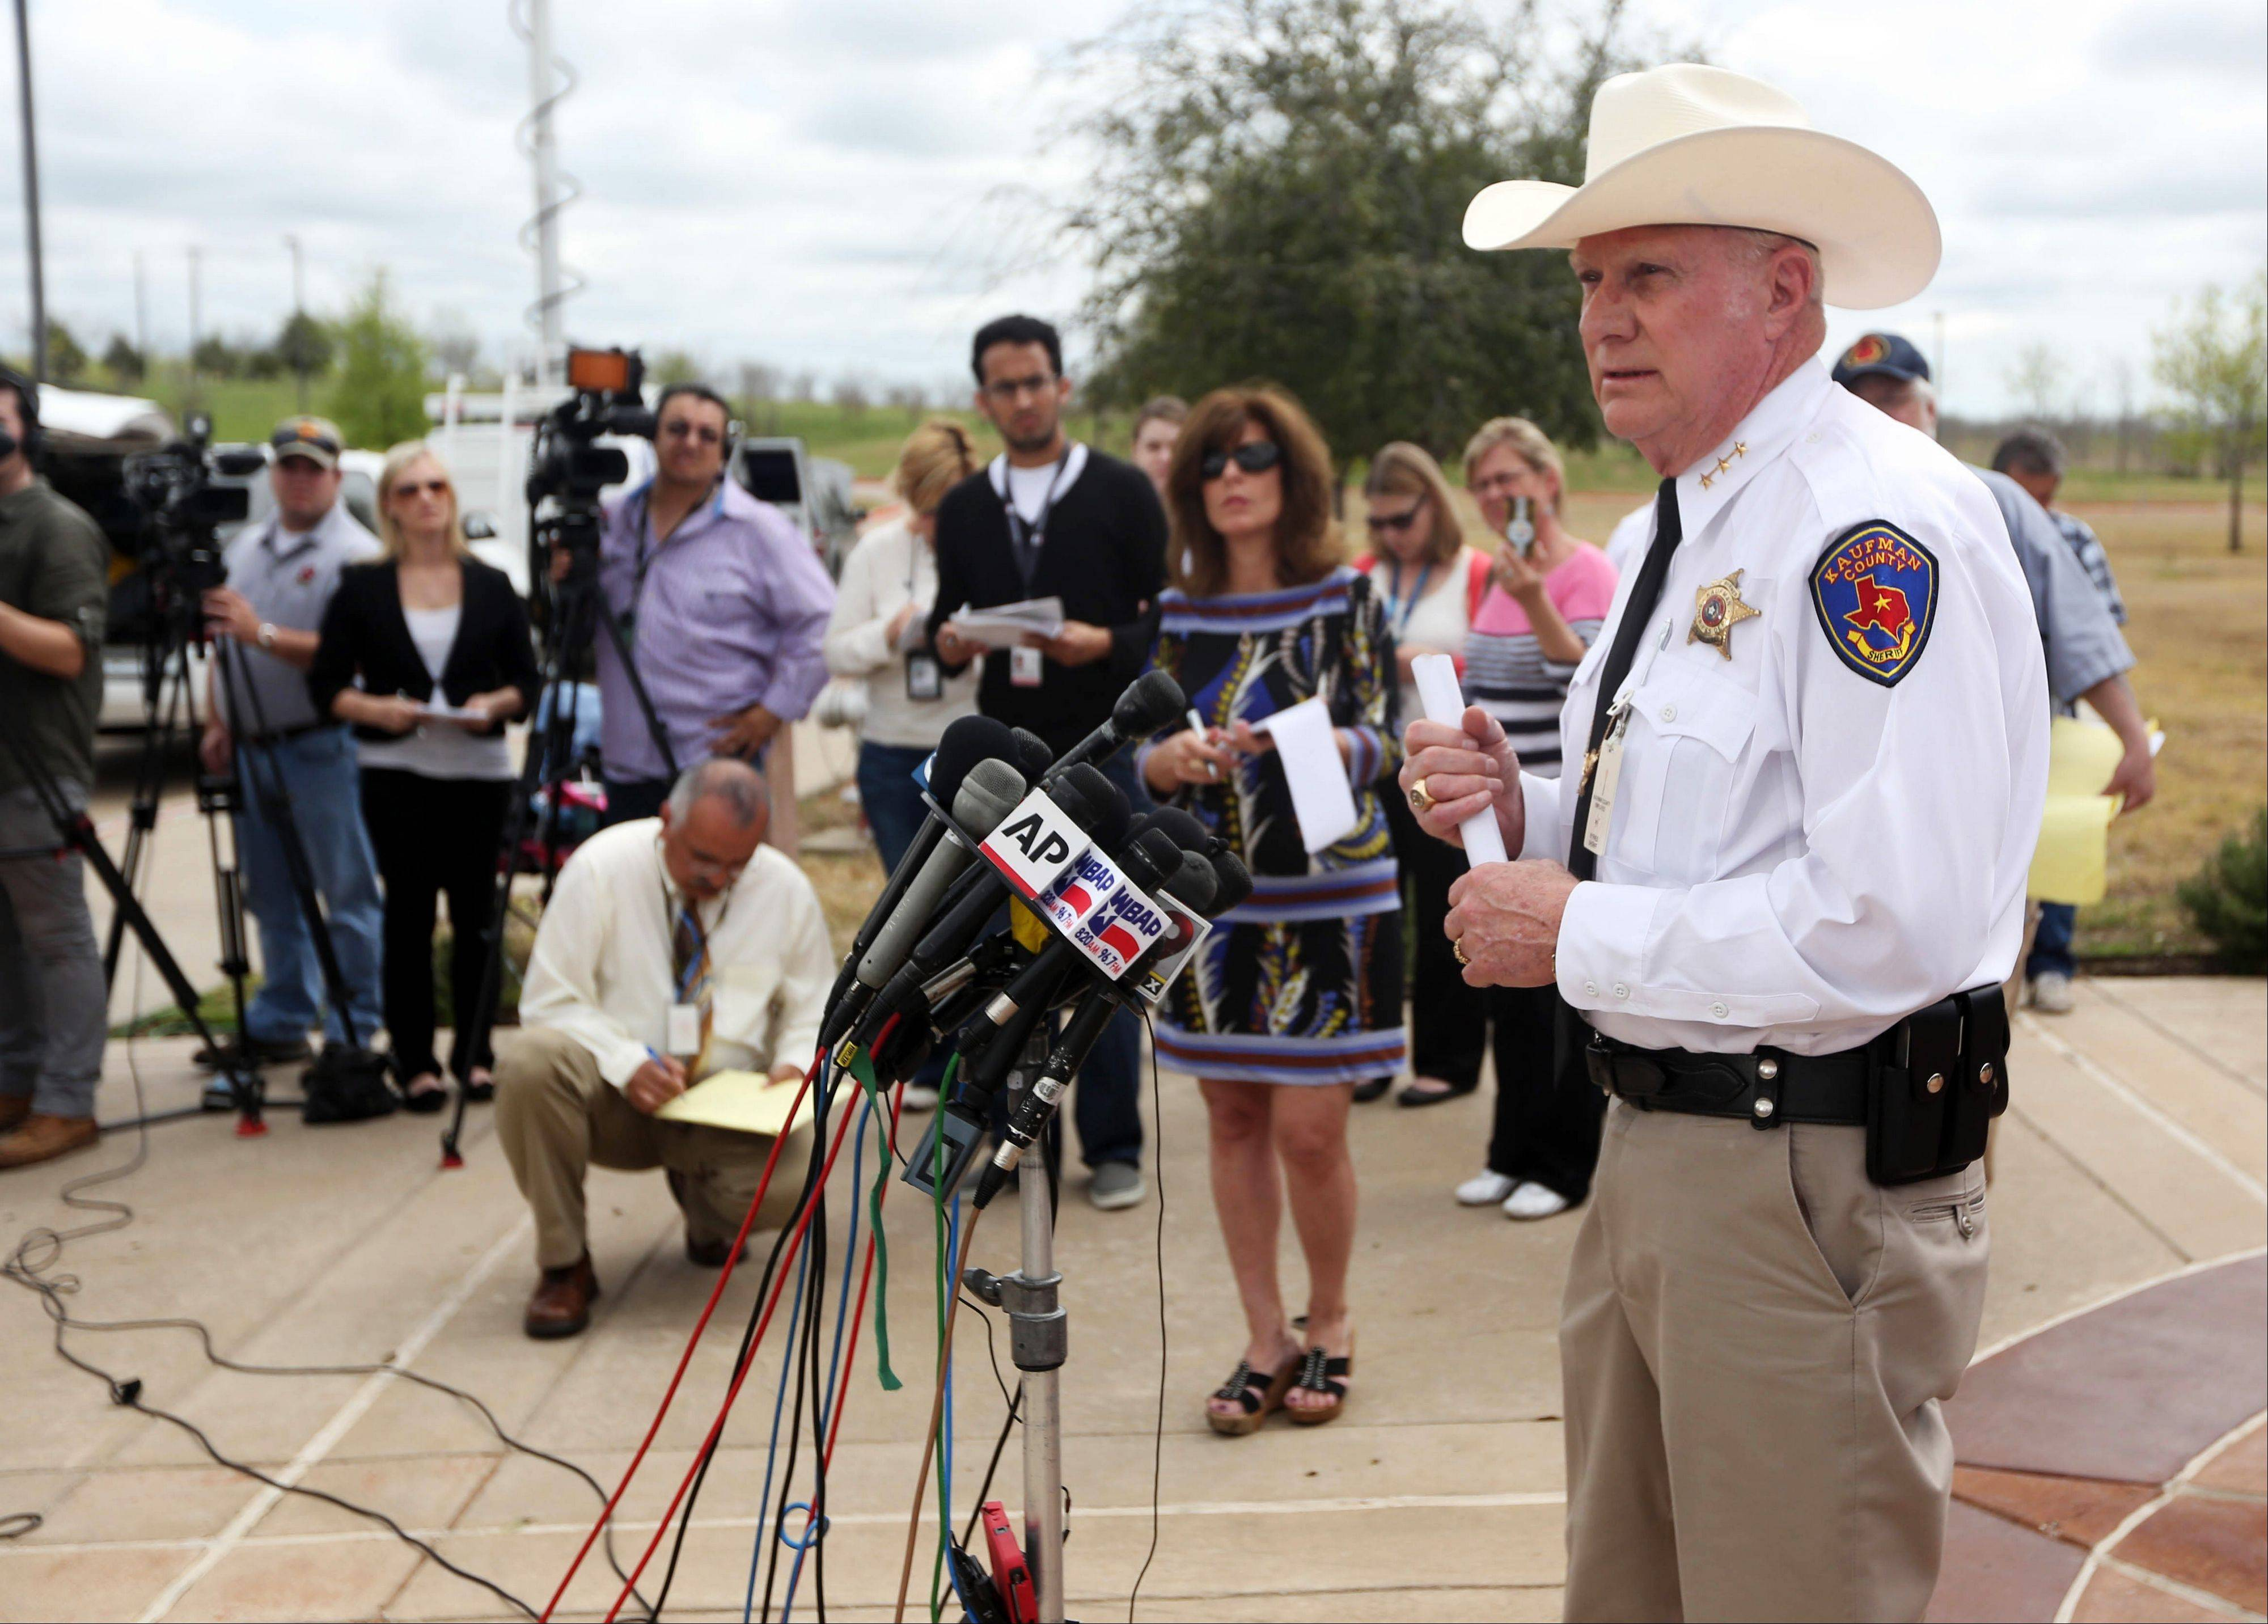 Kaufman County Sheriff David Byrnes, right, speaks at a news conference, Sunday in Kaufman, Texas. On Saturday, Kaufman County District Attorney Mike McLelland and his wife, Cynthia, were murdered in their home.